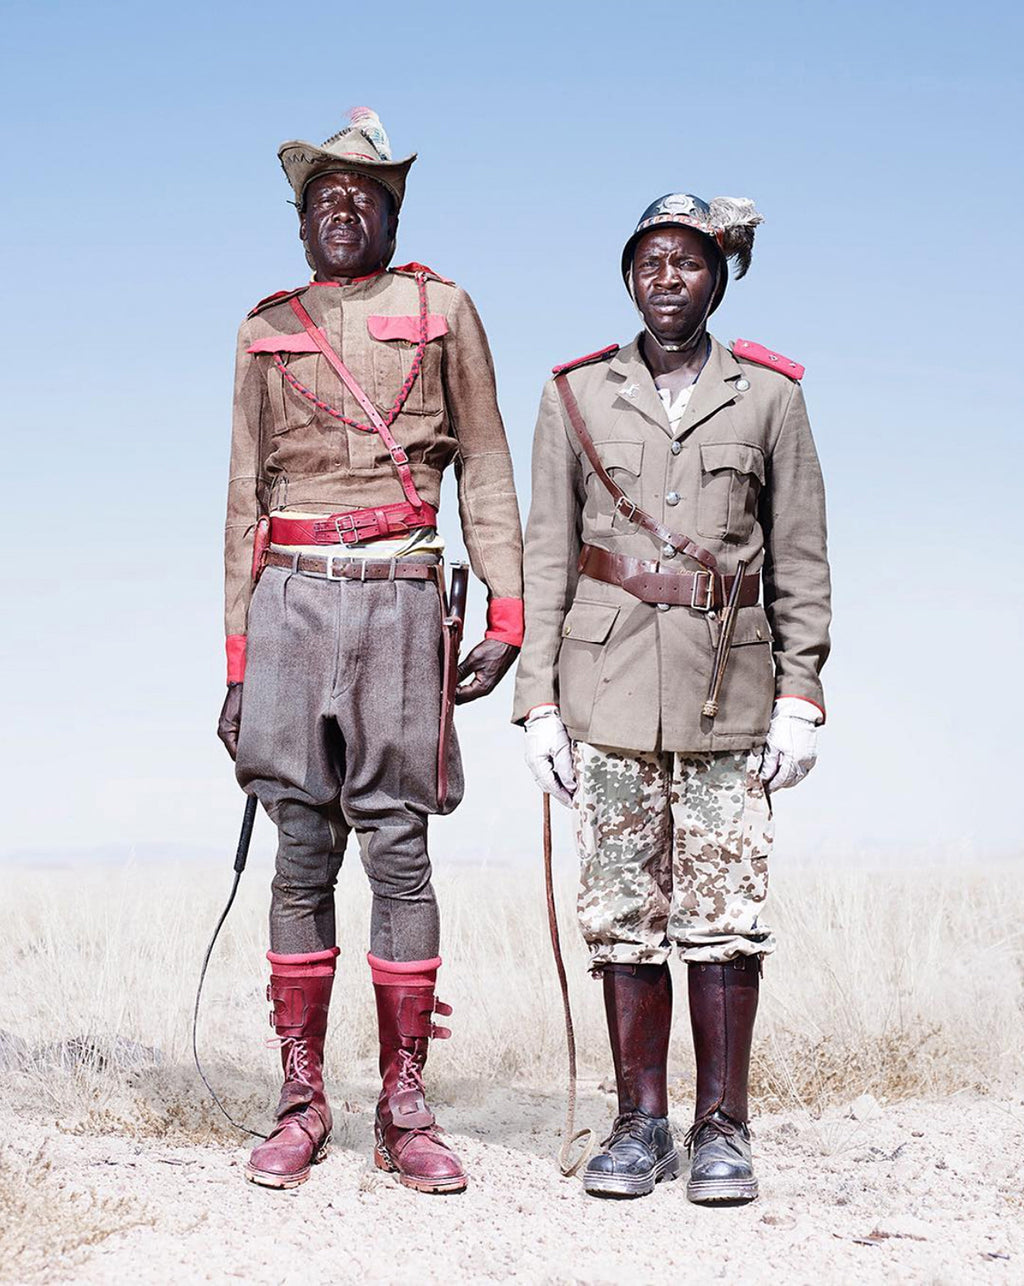 Safari Journal / Blog by Safari Fusion | Victorian style of Namibia | Beautiful imagery of Namibia's Herero people captured by artistic photographer Jim Naughten